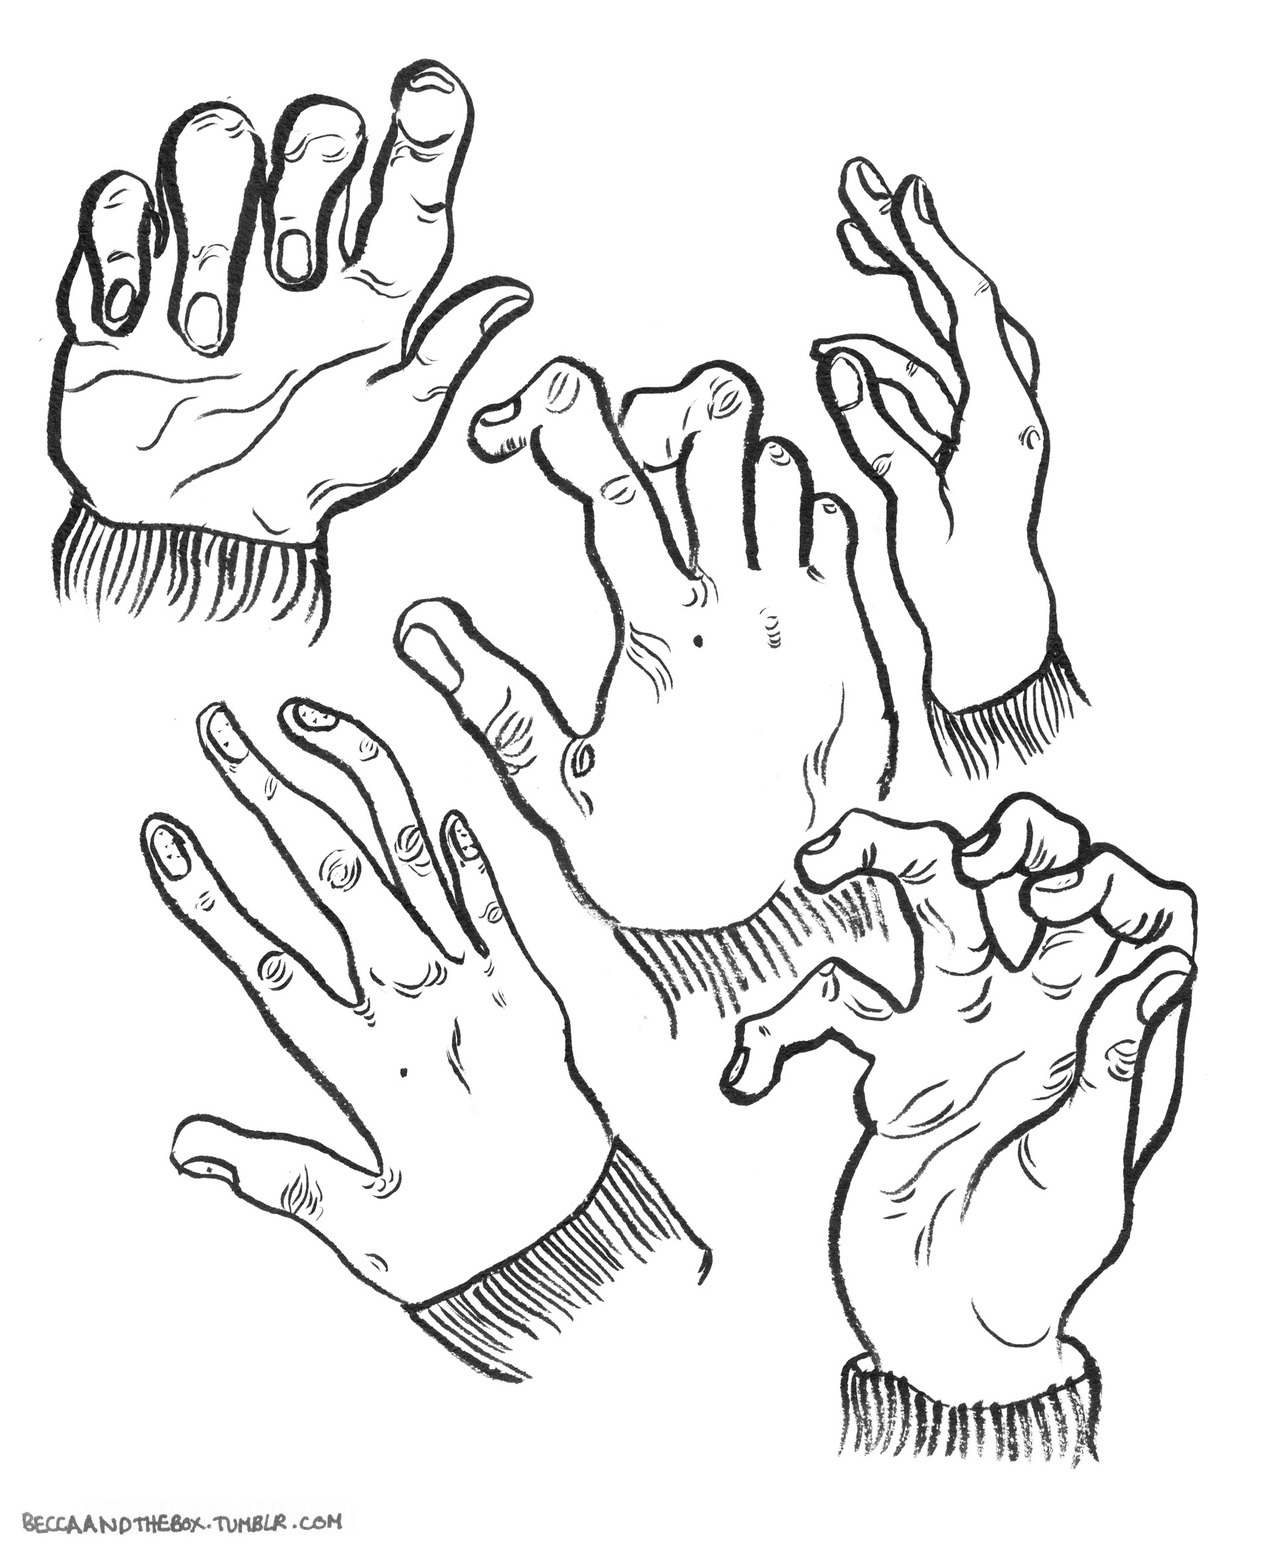 Did some hand studies a while ago to destress and help me lose my fear of drawing straight onto paper with no plan.